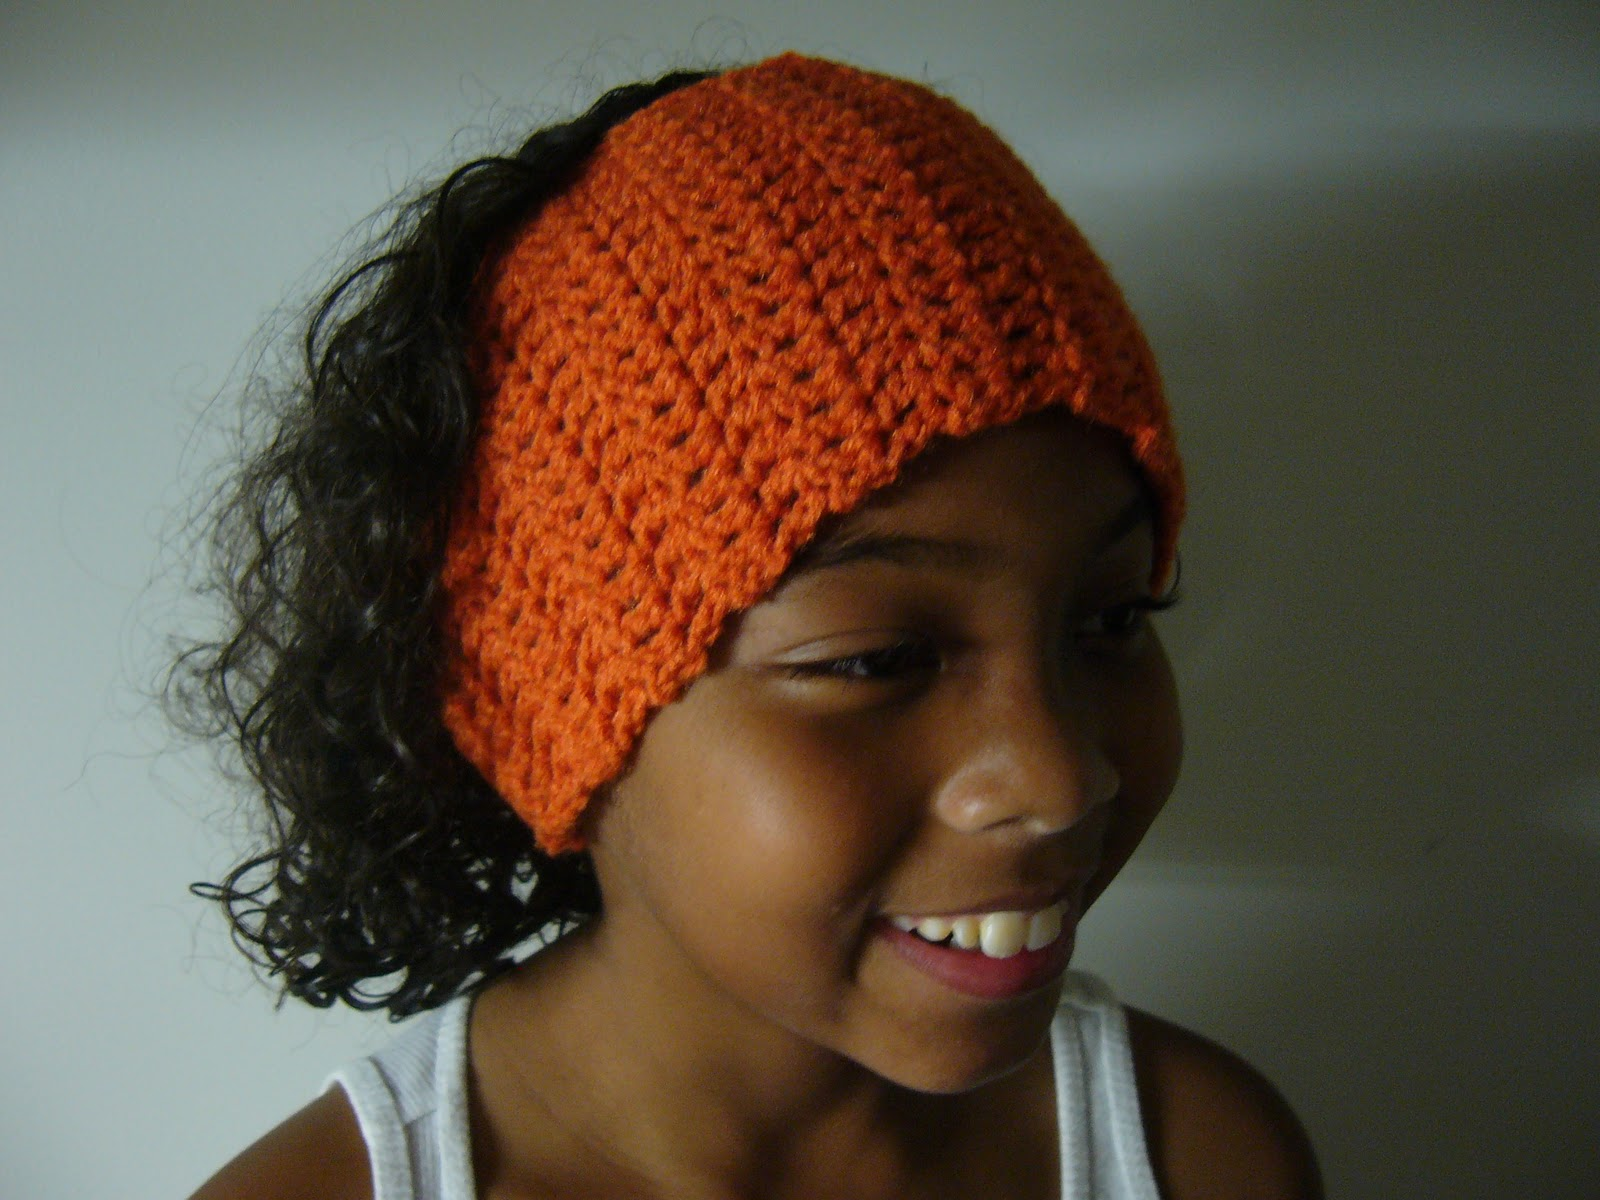 Crochet Flower Ear Warmer Tutorial : Mixin it up with DaPerfectMix: Easy Head Warmer Pattern